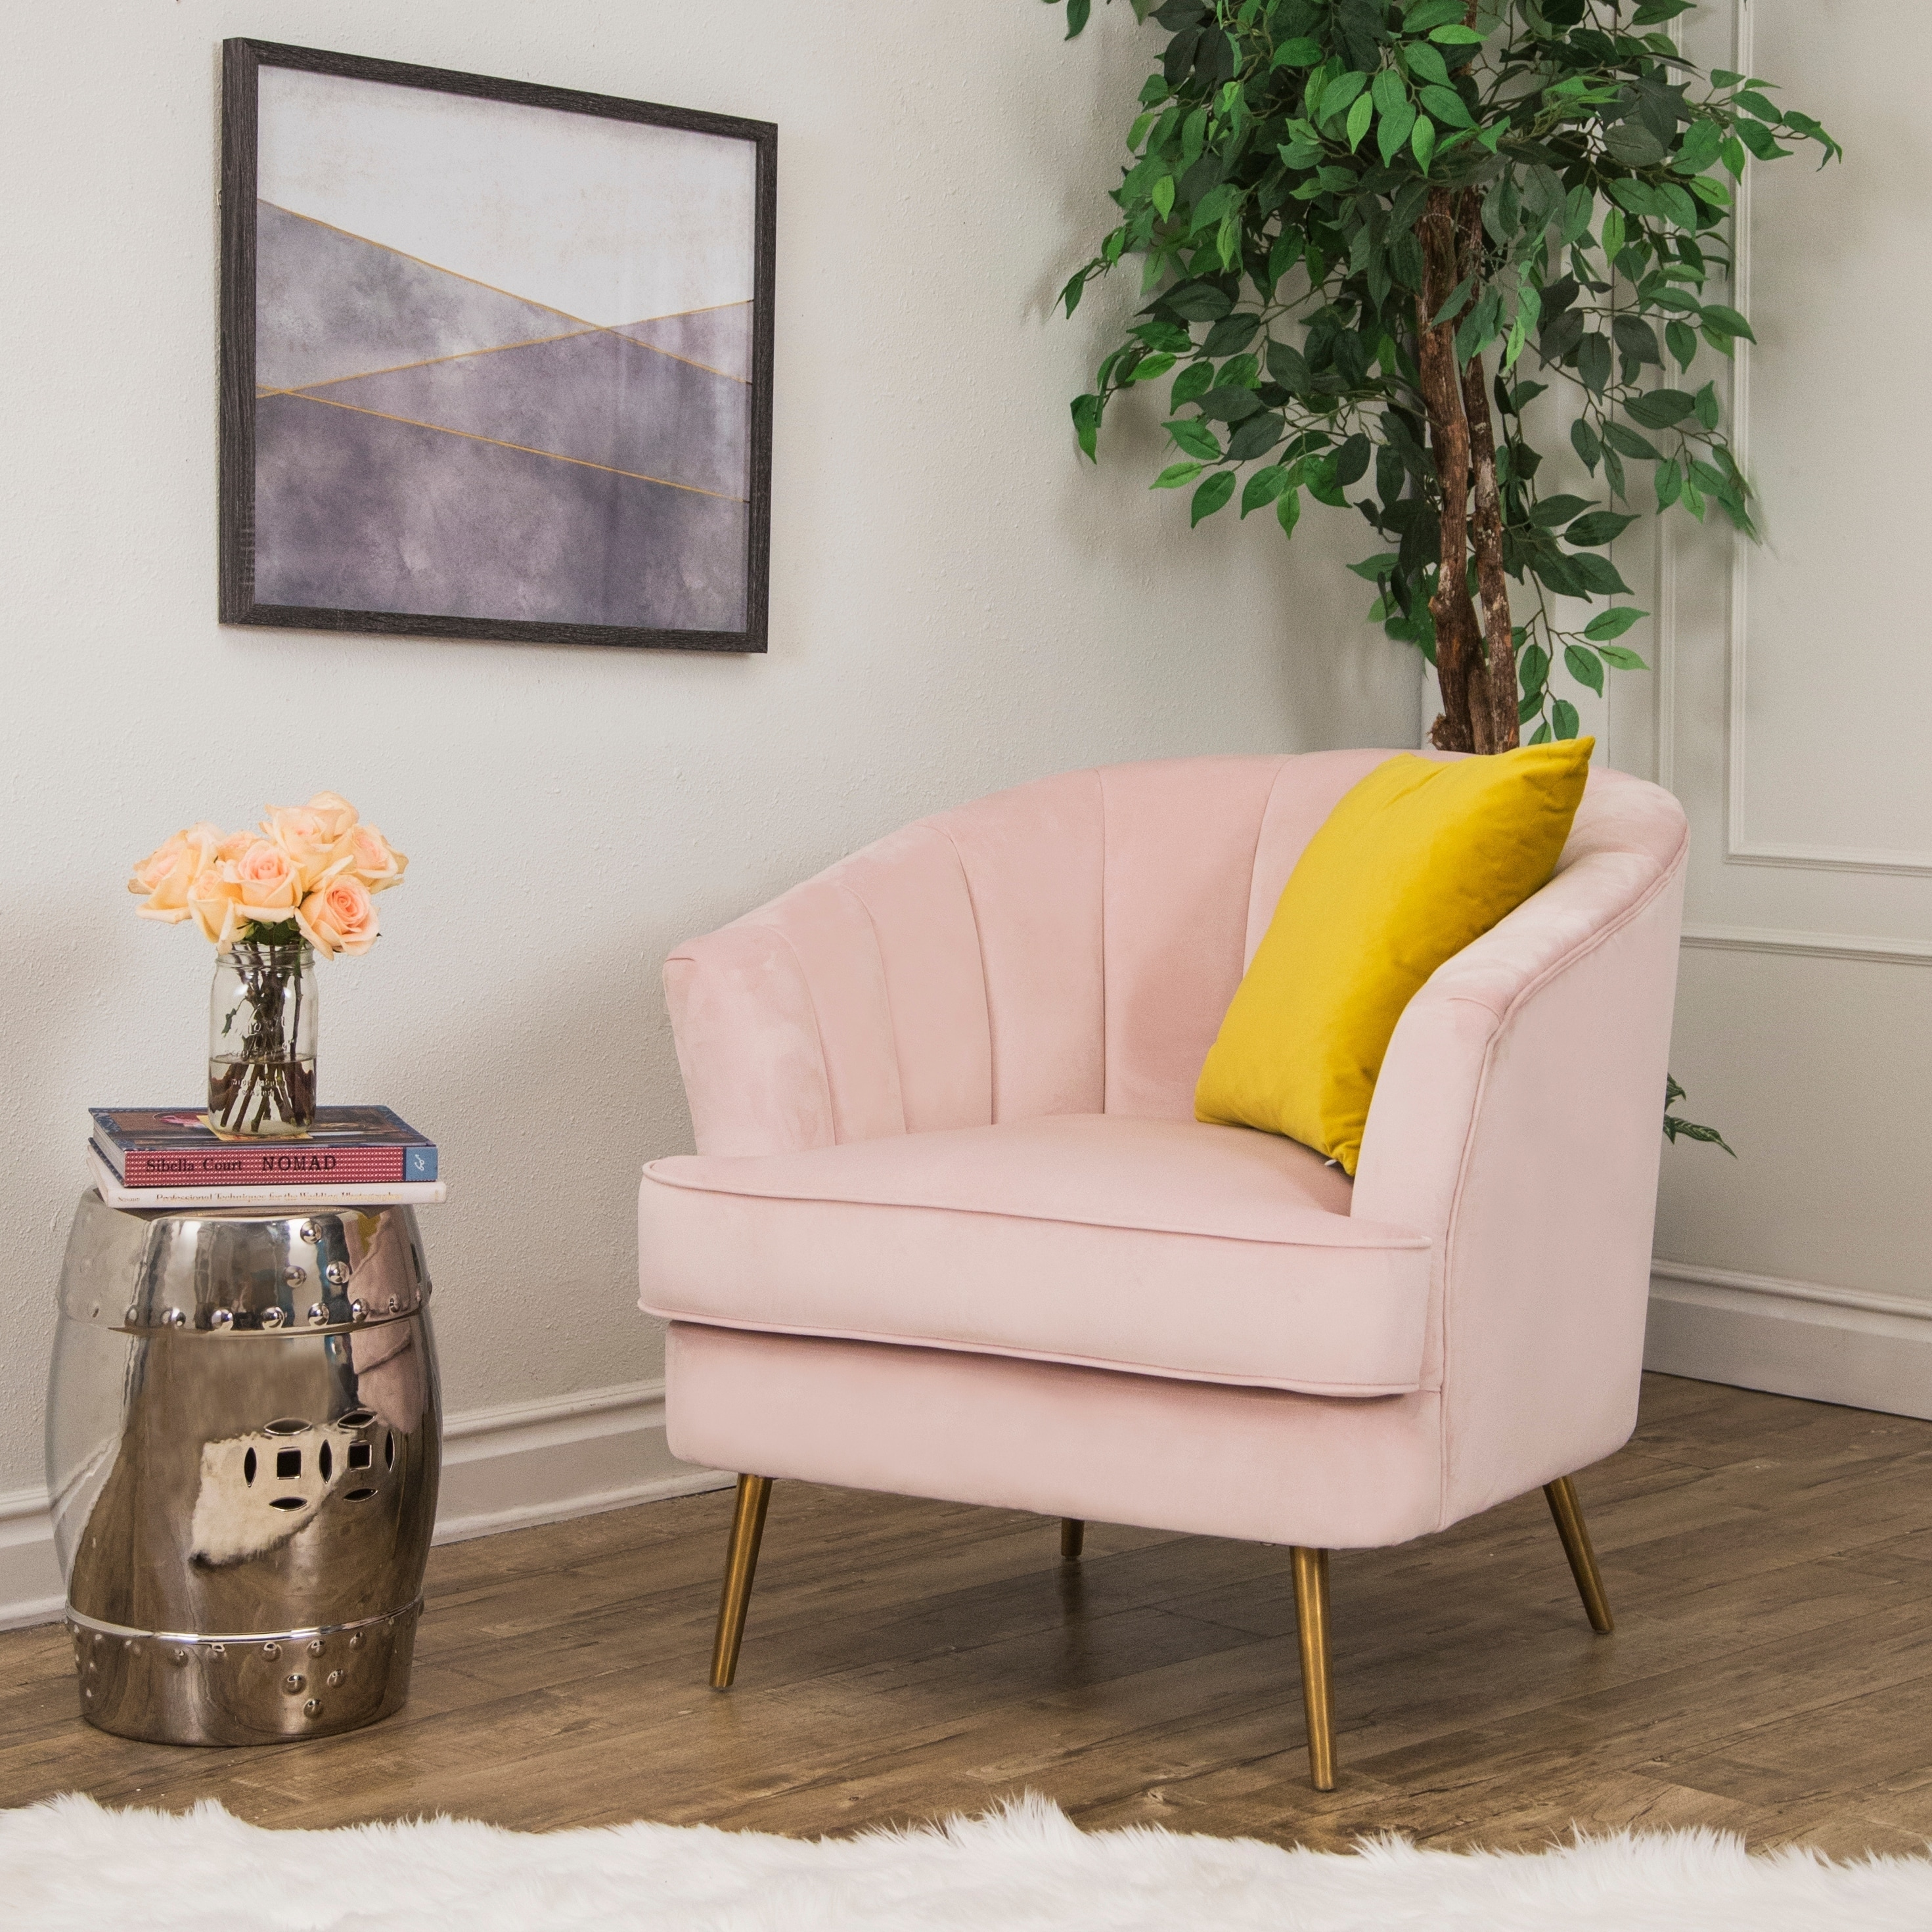 Abbyson Channel Tufted Velvet Accent Chair, Blush Pink - Overstock - 22848843